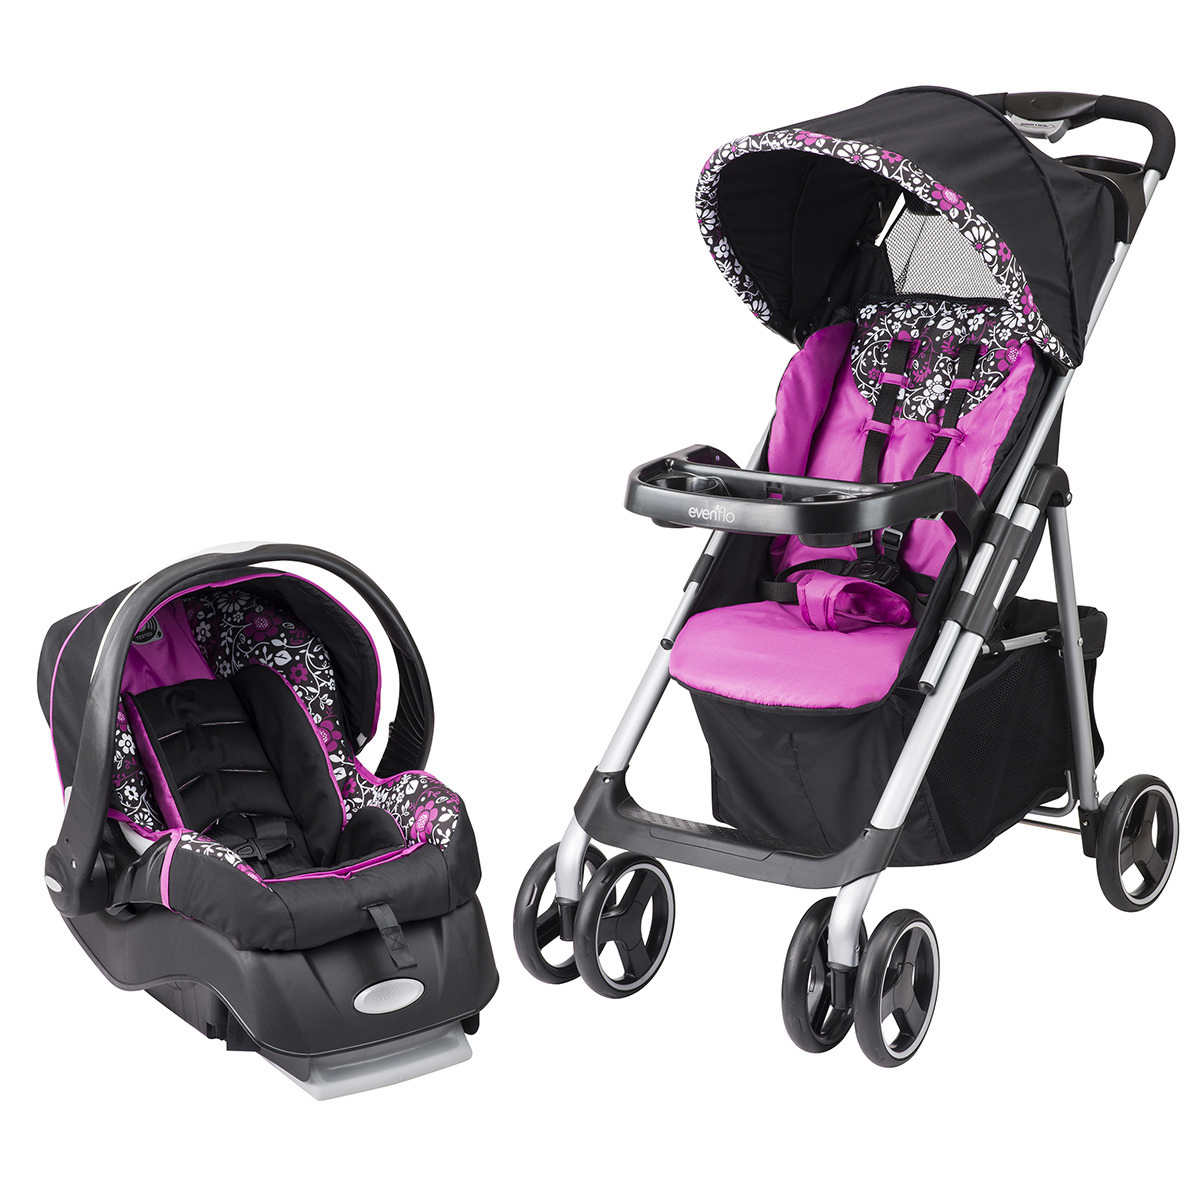 travel systems  strollers  costco - evenflo® vive travel system with embrace lx infant car seat – daphne